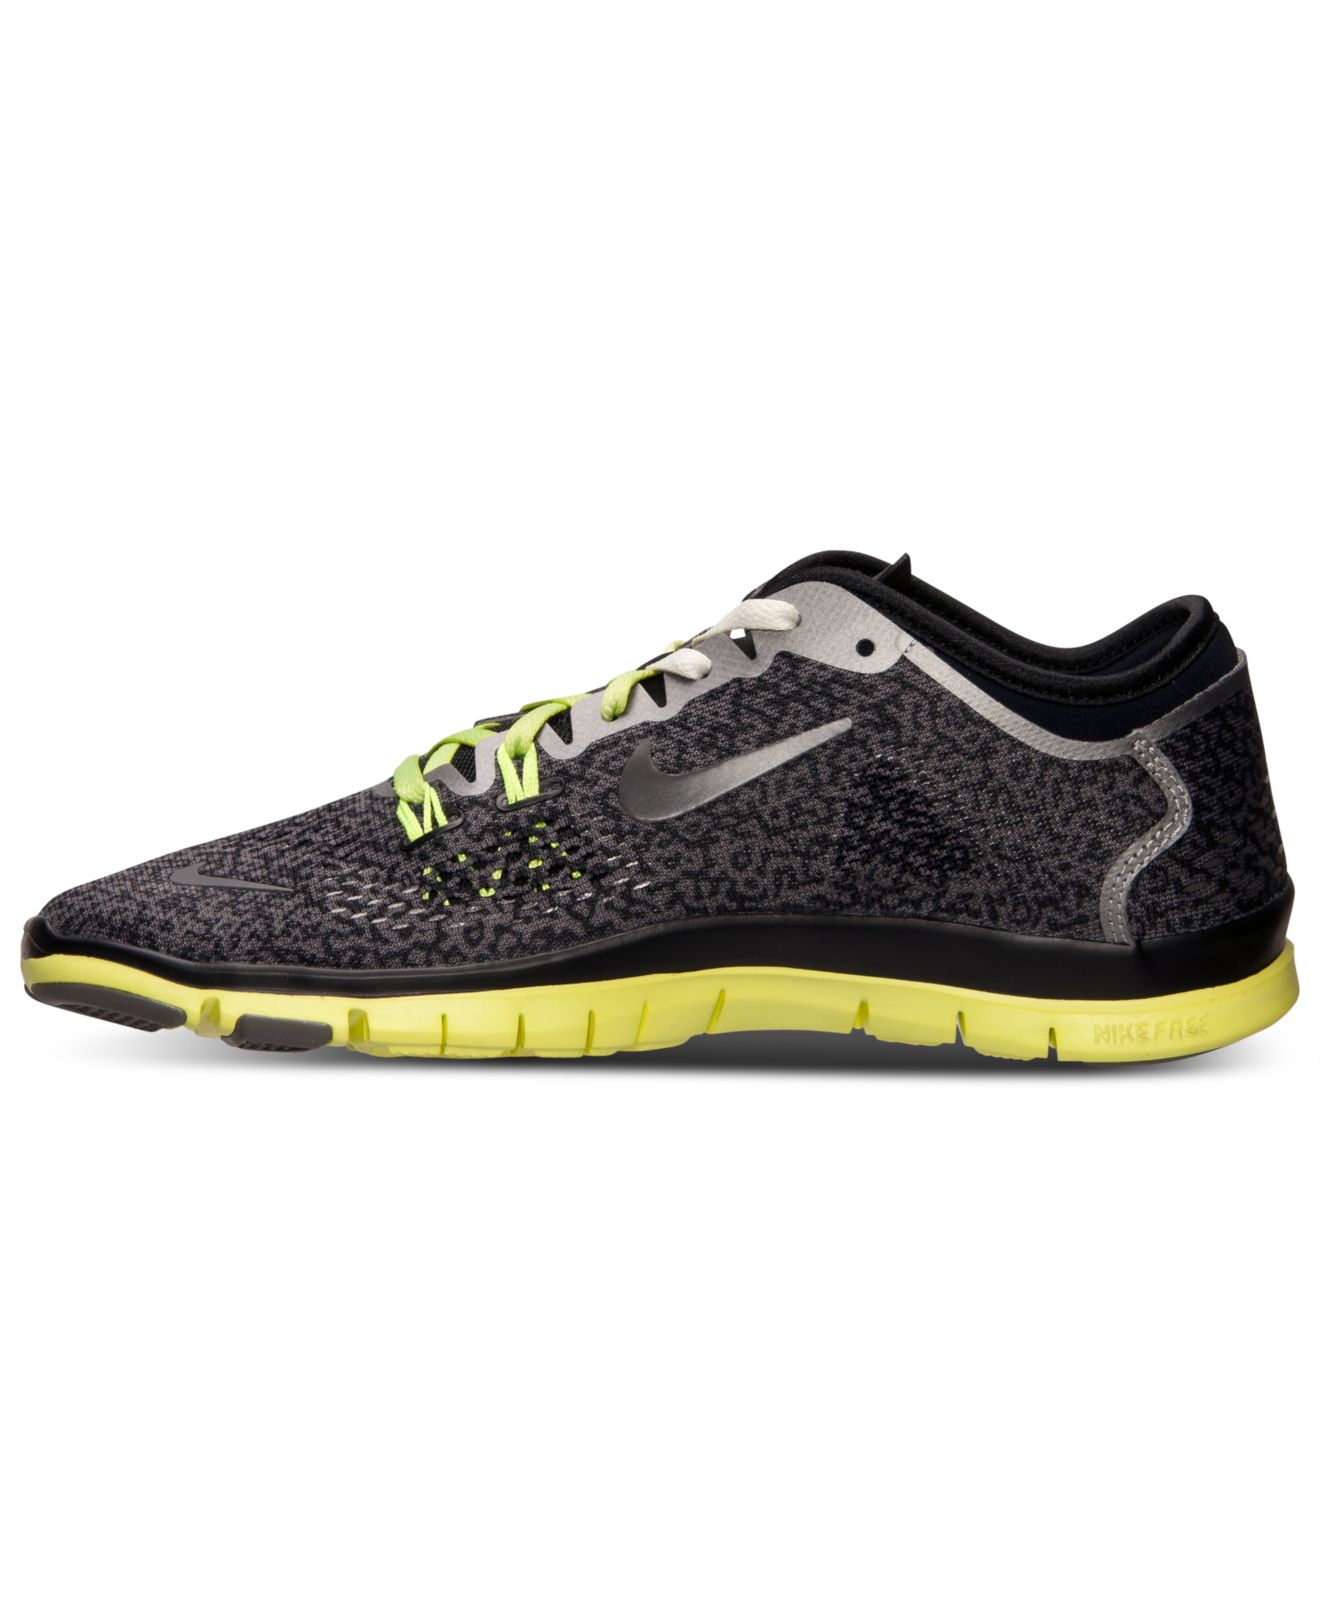 online store 66a93 61da6 nike free 5.0 at finish line